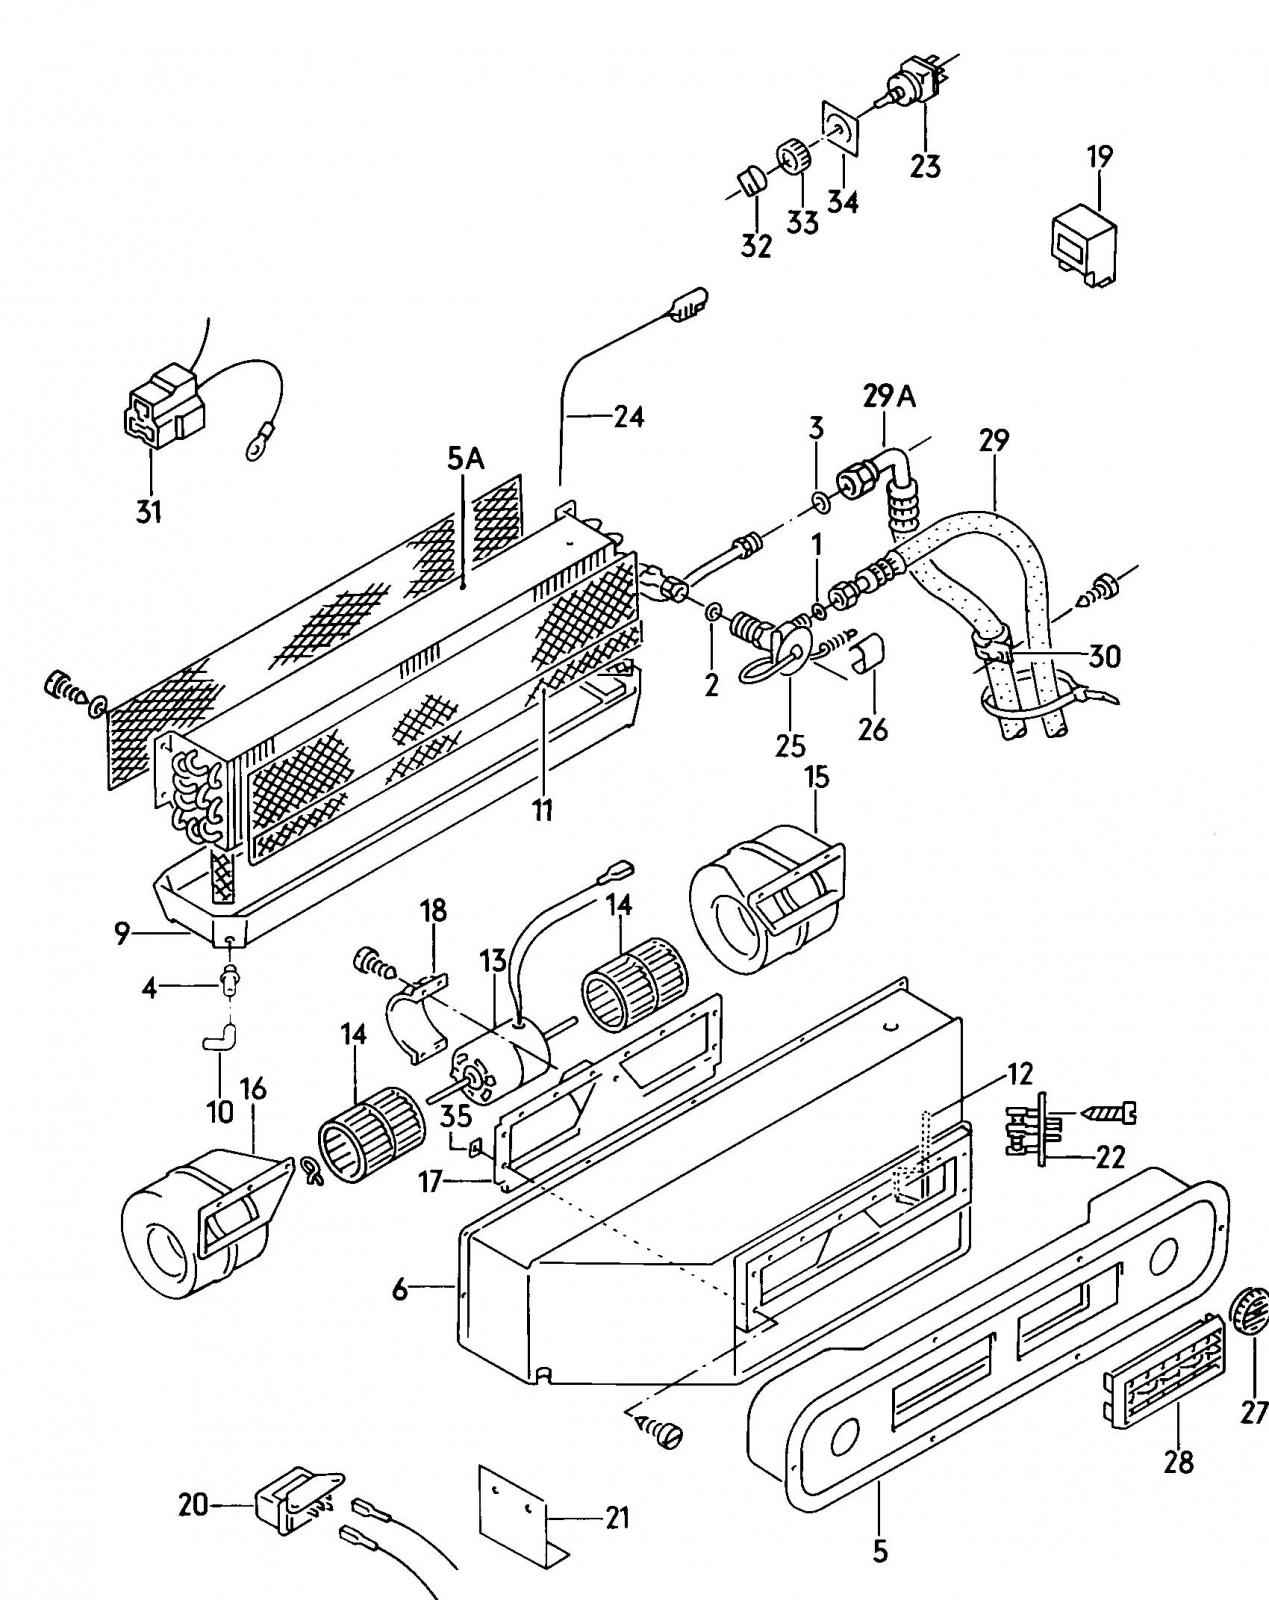 hight resolution of thesamba com vanagon view topic do you have a 1984 1985 or vanagon ac wiring diagram